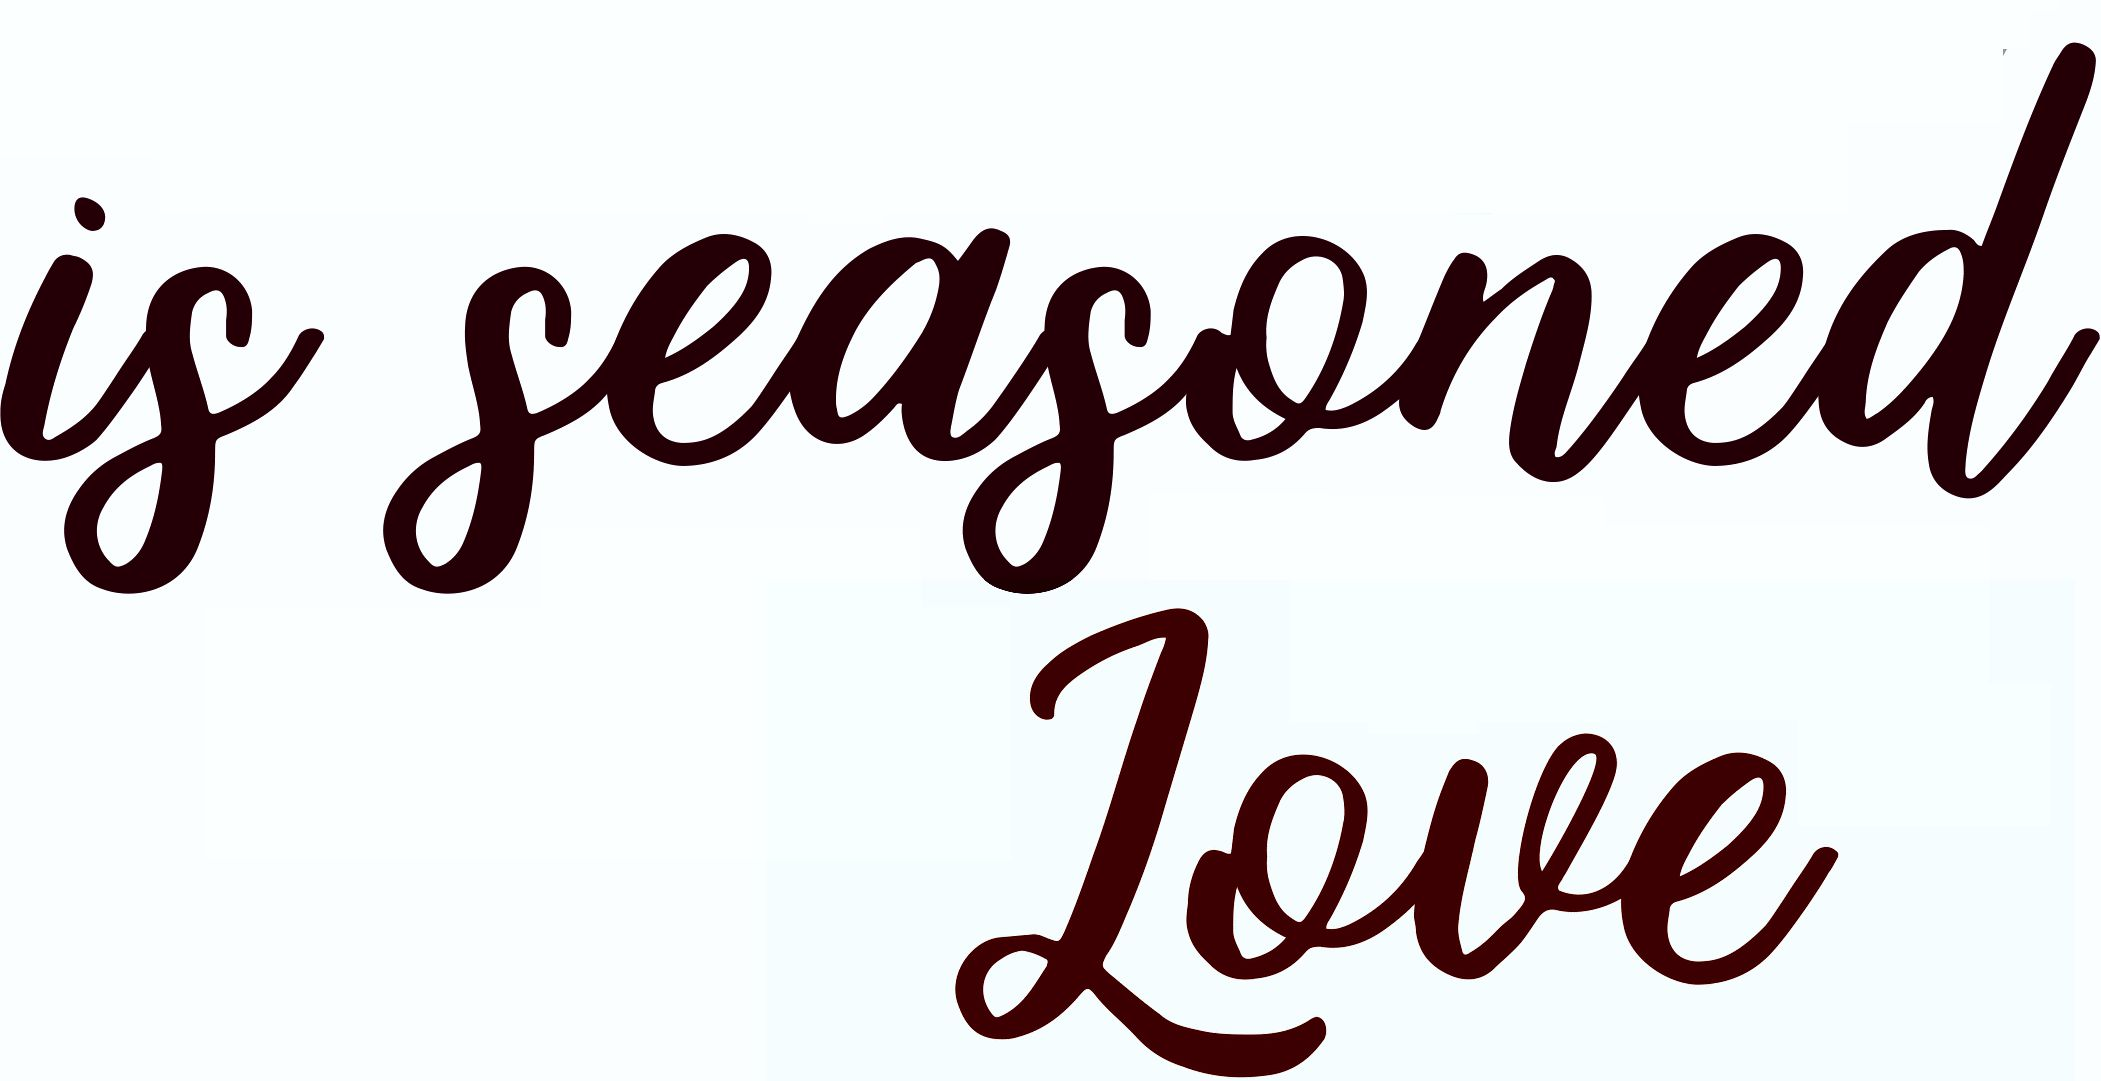 Text Says Is Seasoned Love Lower Case S Hangs Below The Line Much Like Letter G